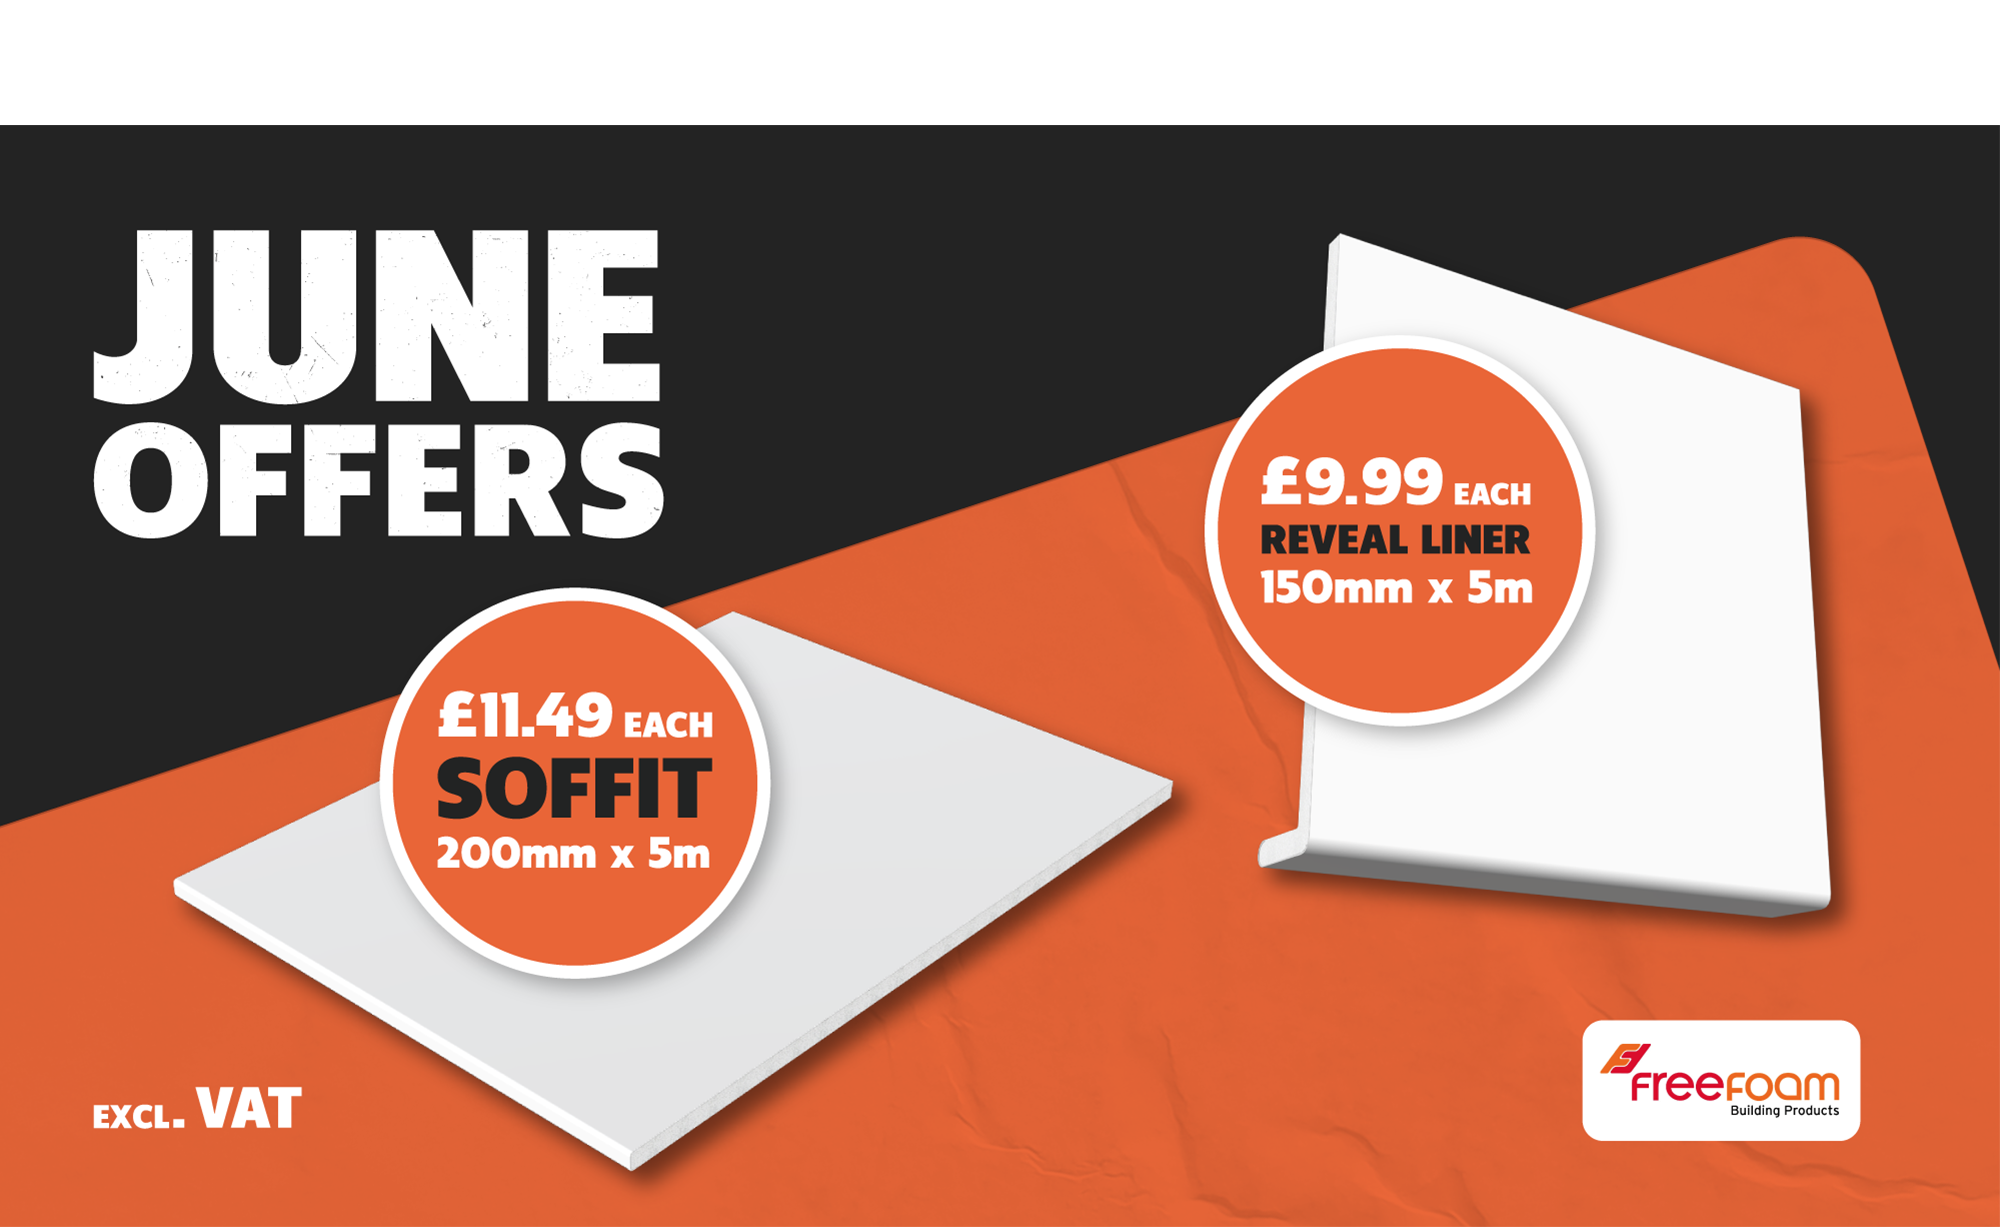 FREEFOAM ROOFLINE SOFFIT & REVEAL LINER FROM £9.99